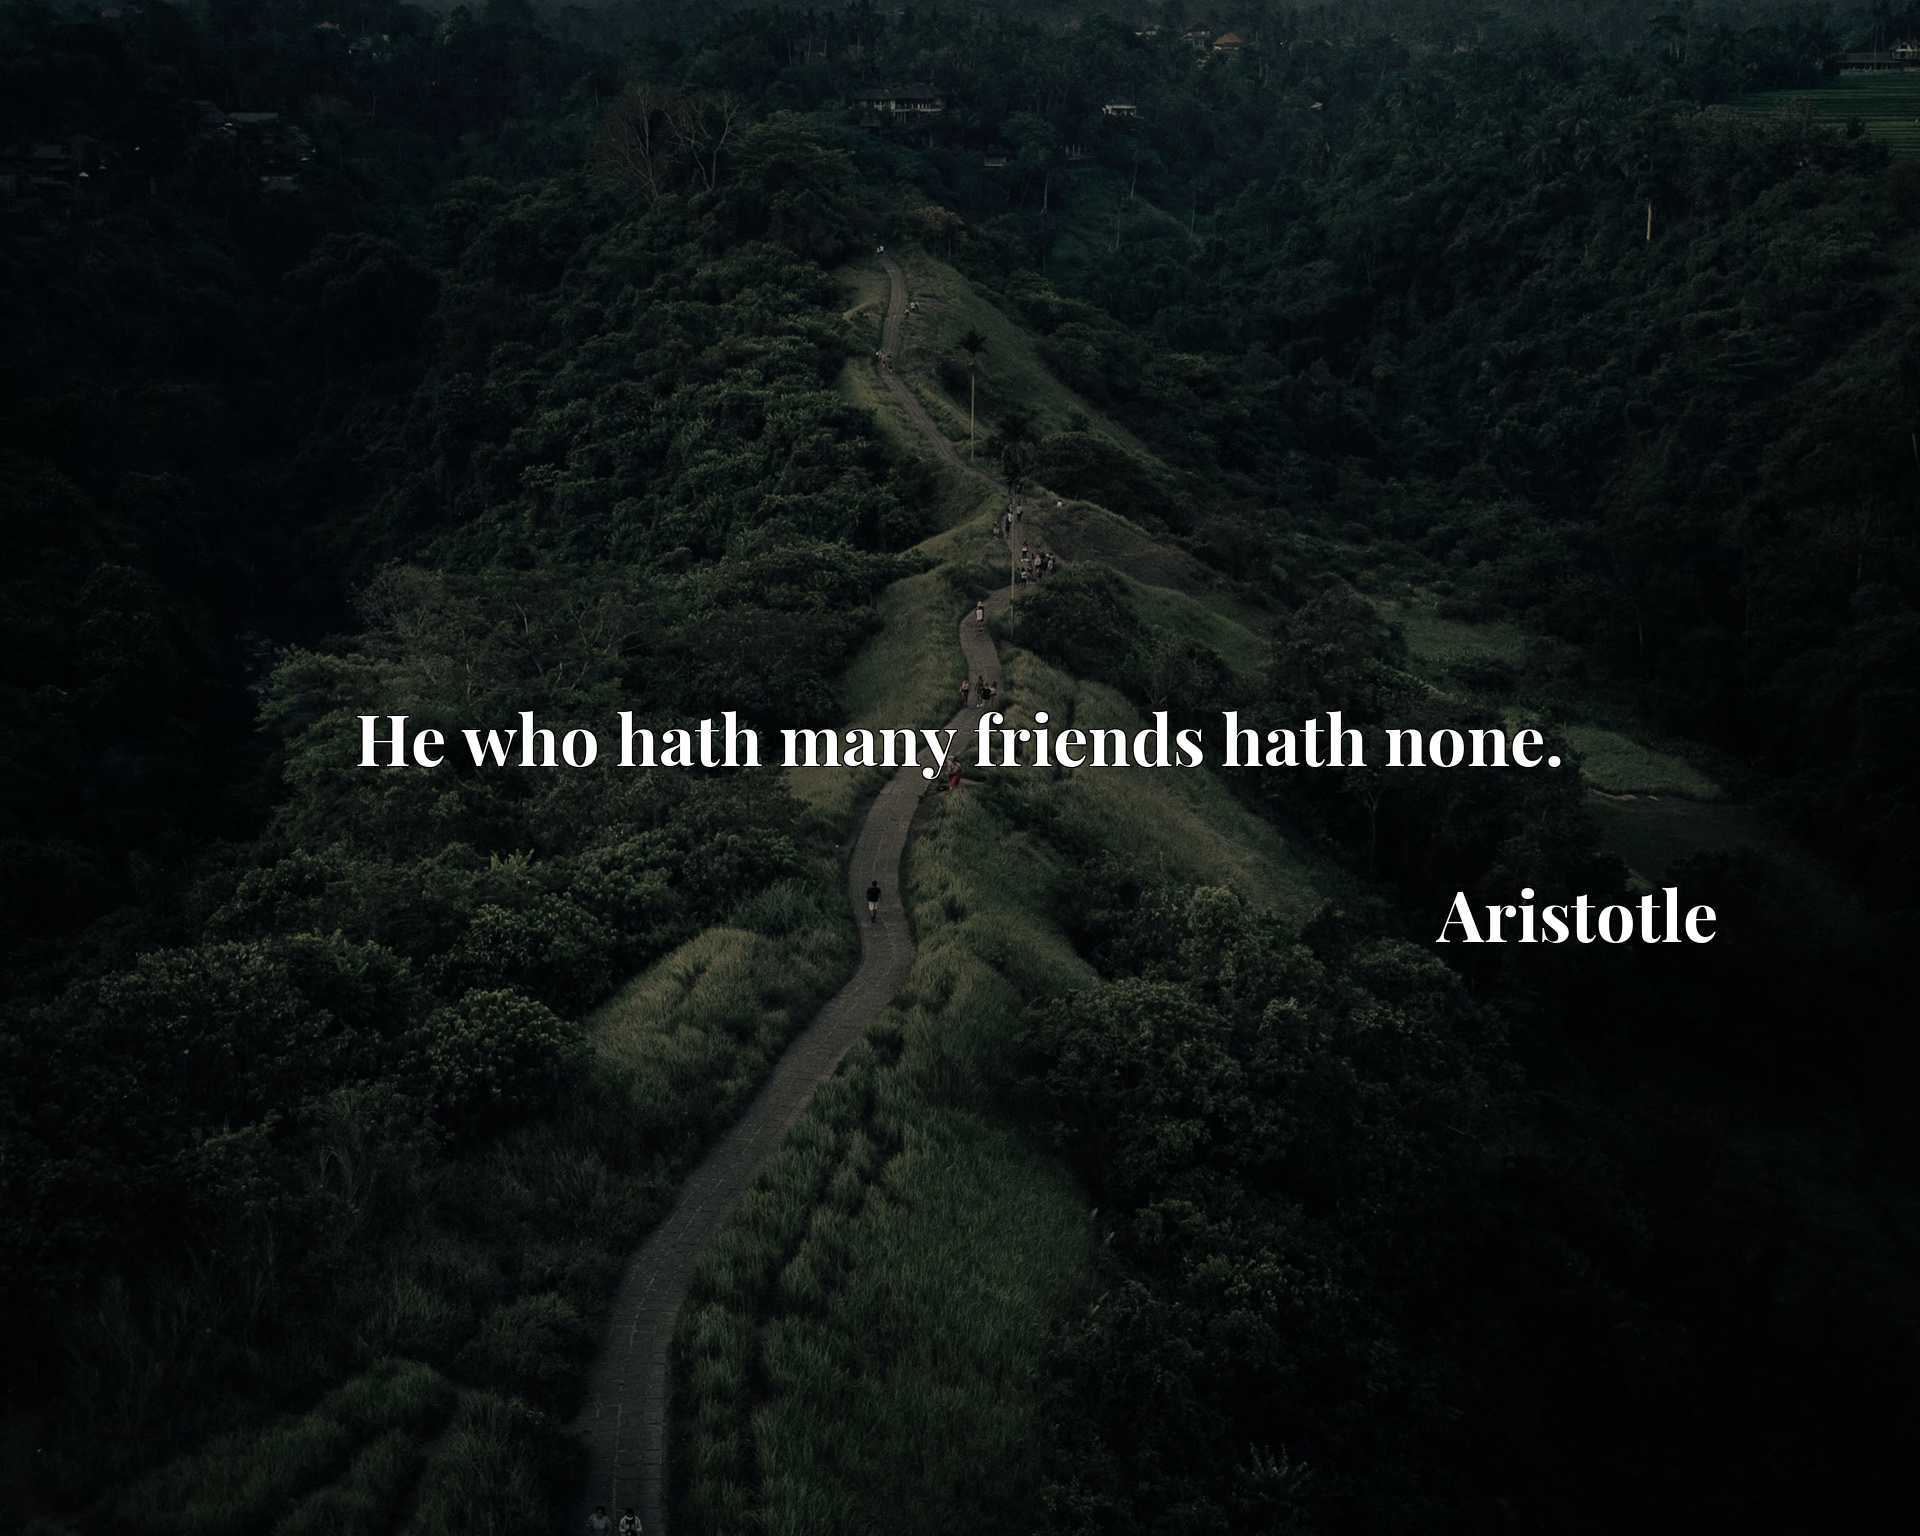 He who hath many friends hath none.